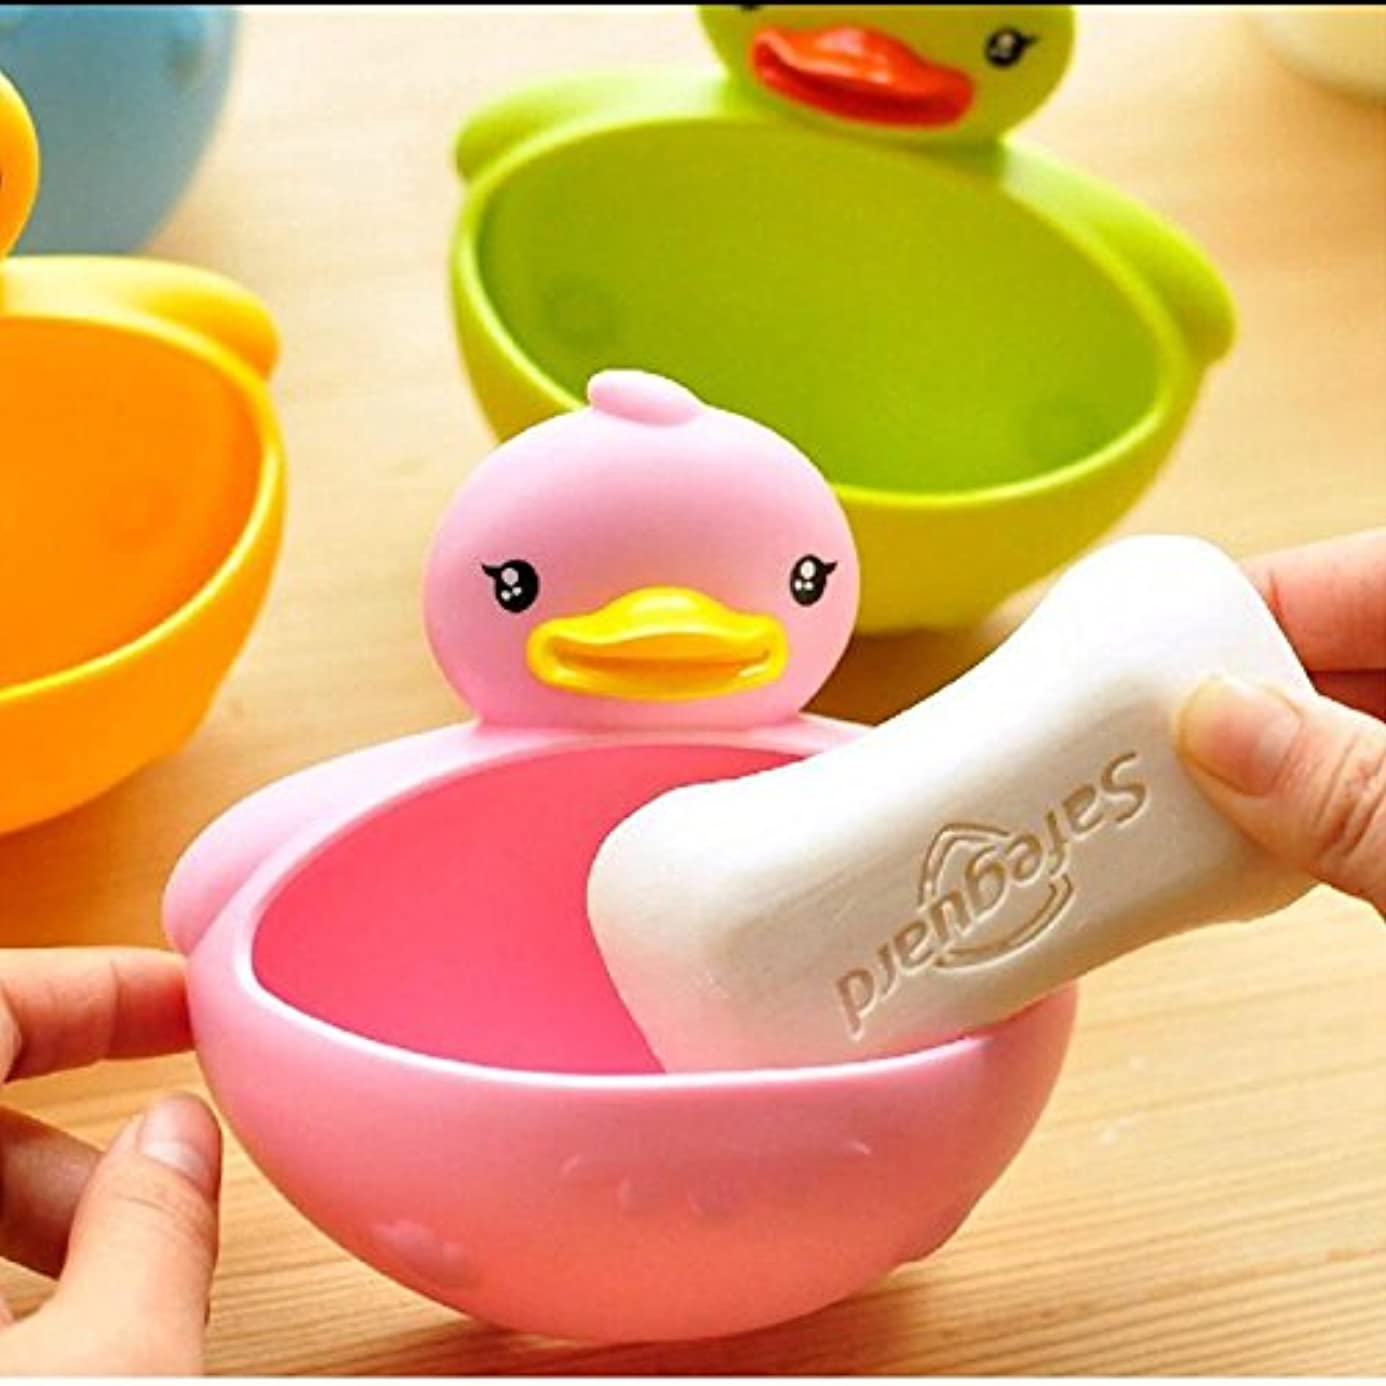 Favor Soap - Practical Cartoon Animal Duck Soap Box Dish Holder With Suction Robe - Holders Travel White Bulk Metal Shell Soap Wall Drainage Blue Showers Bathtub Holder Dishes Stone Toothbrush C